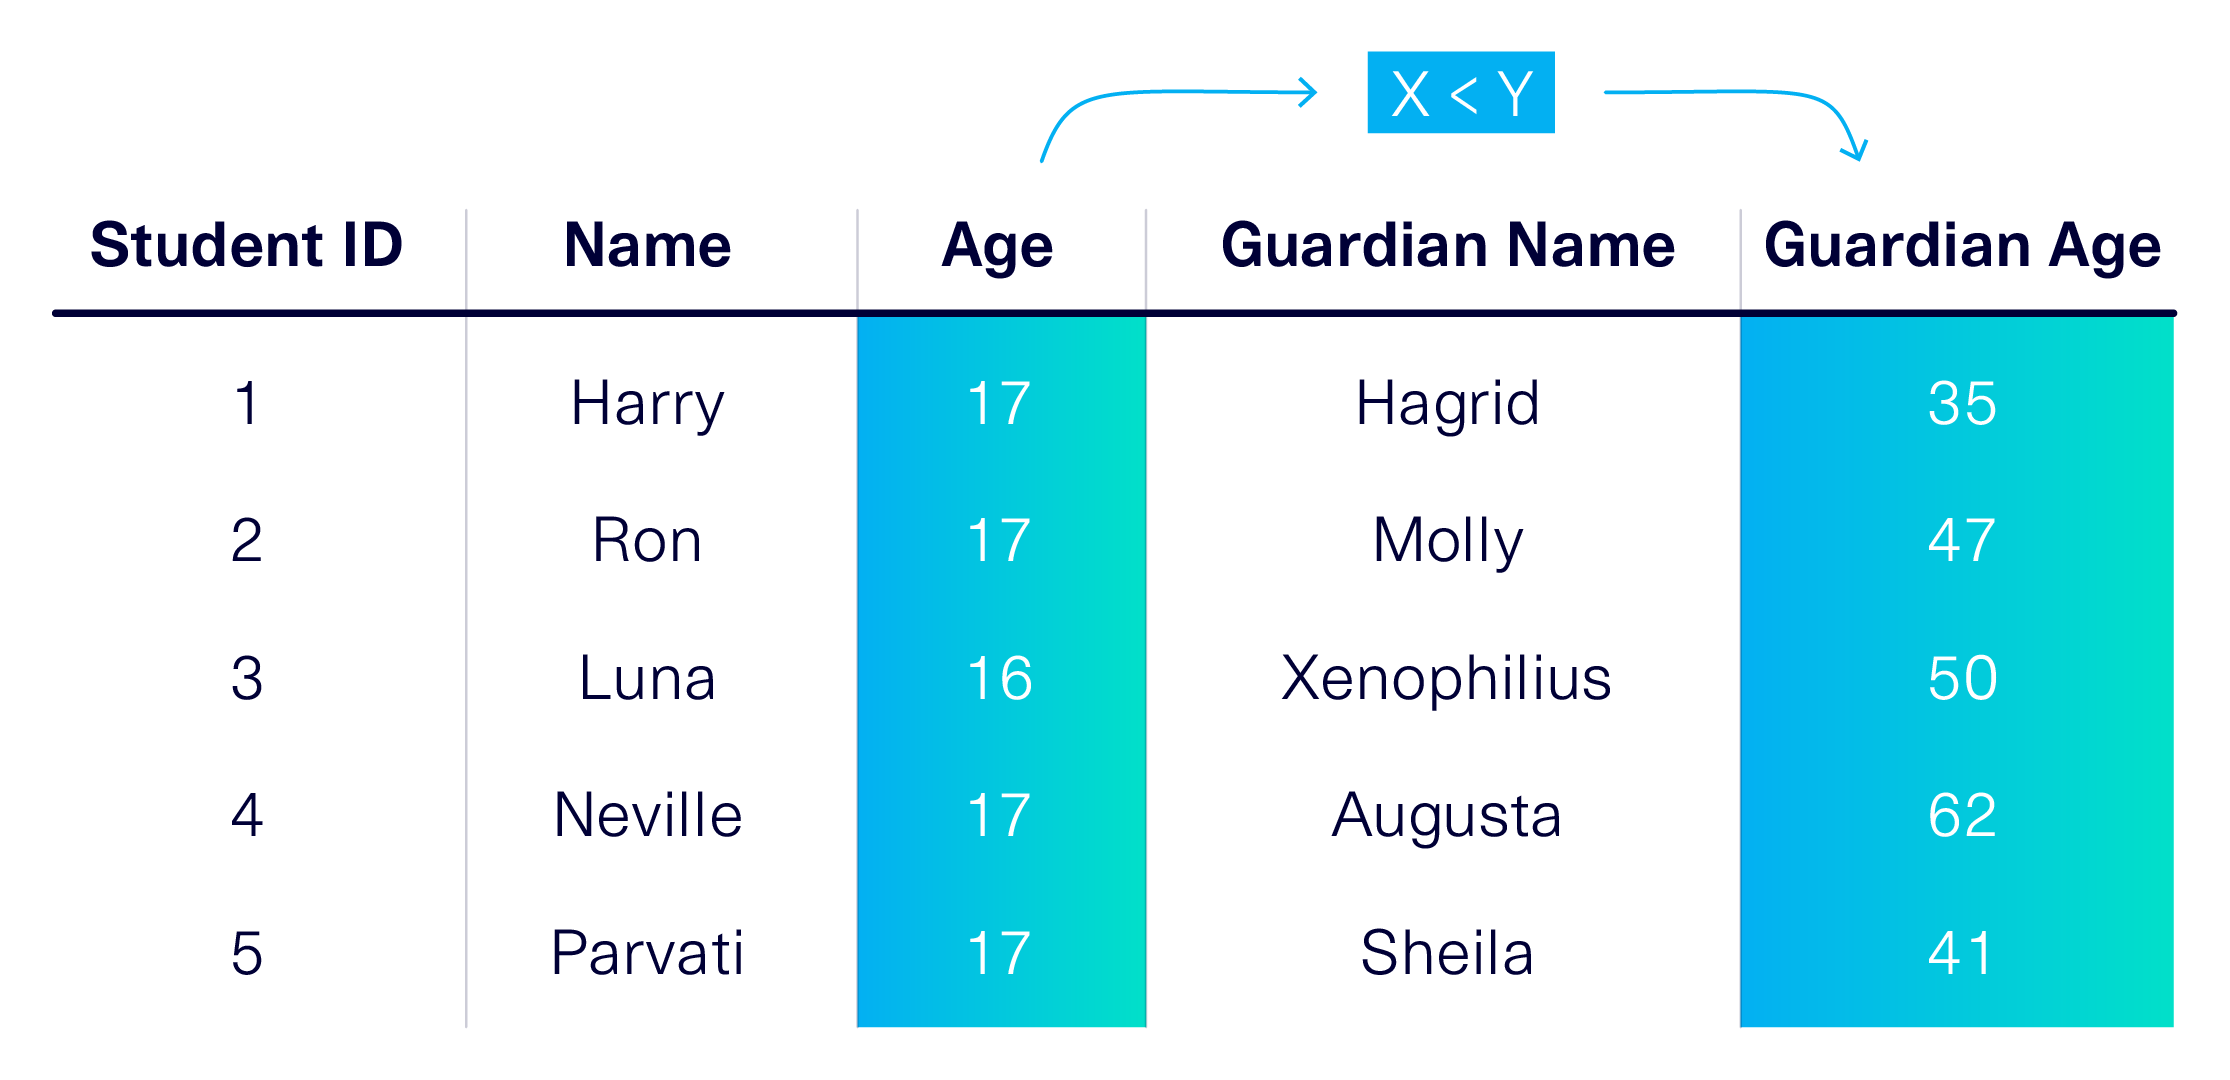 A table of student names, their ages, their guardians, and the guardians' ages.